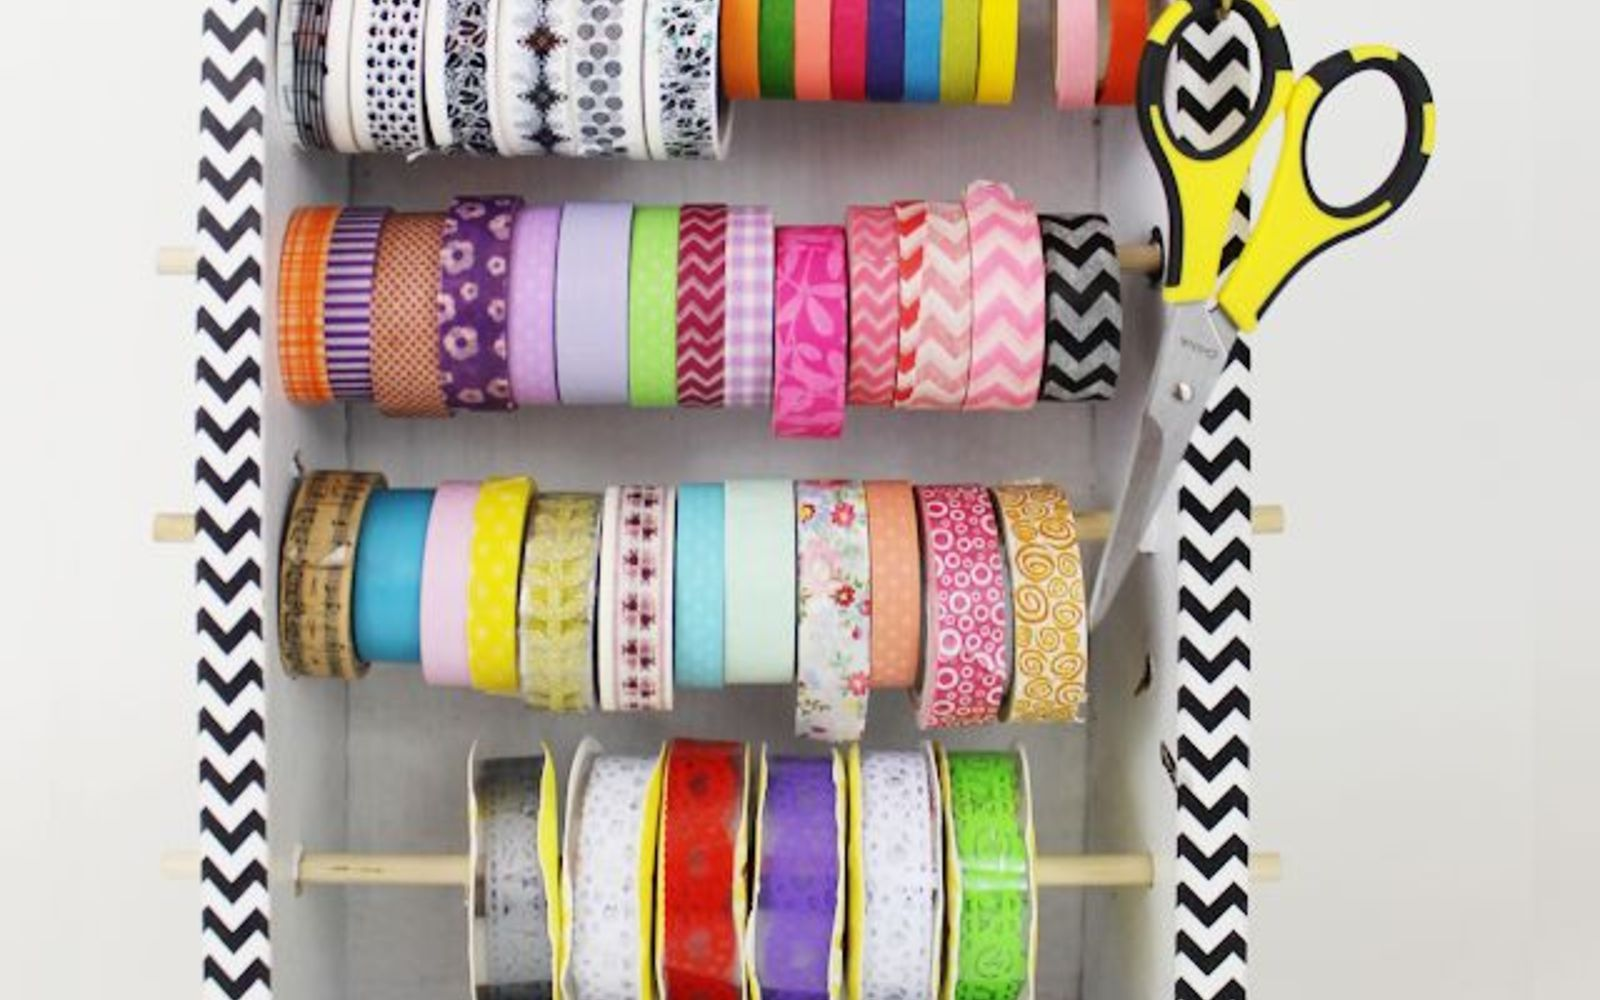 s 15 brilliant ways to reuse your empty cardboard boxes, home decor, repurposing upcycling, Construct a Washi Tape Dispenser